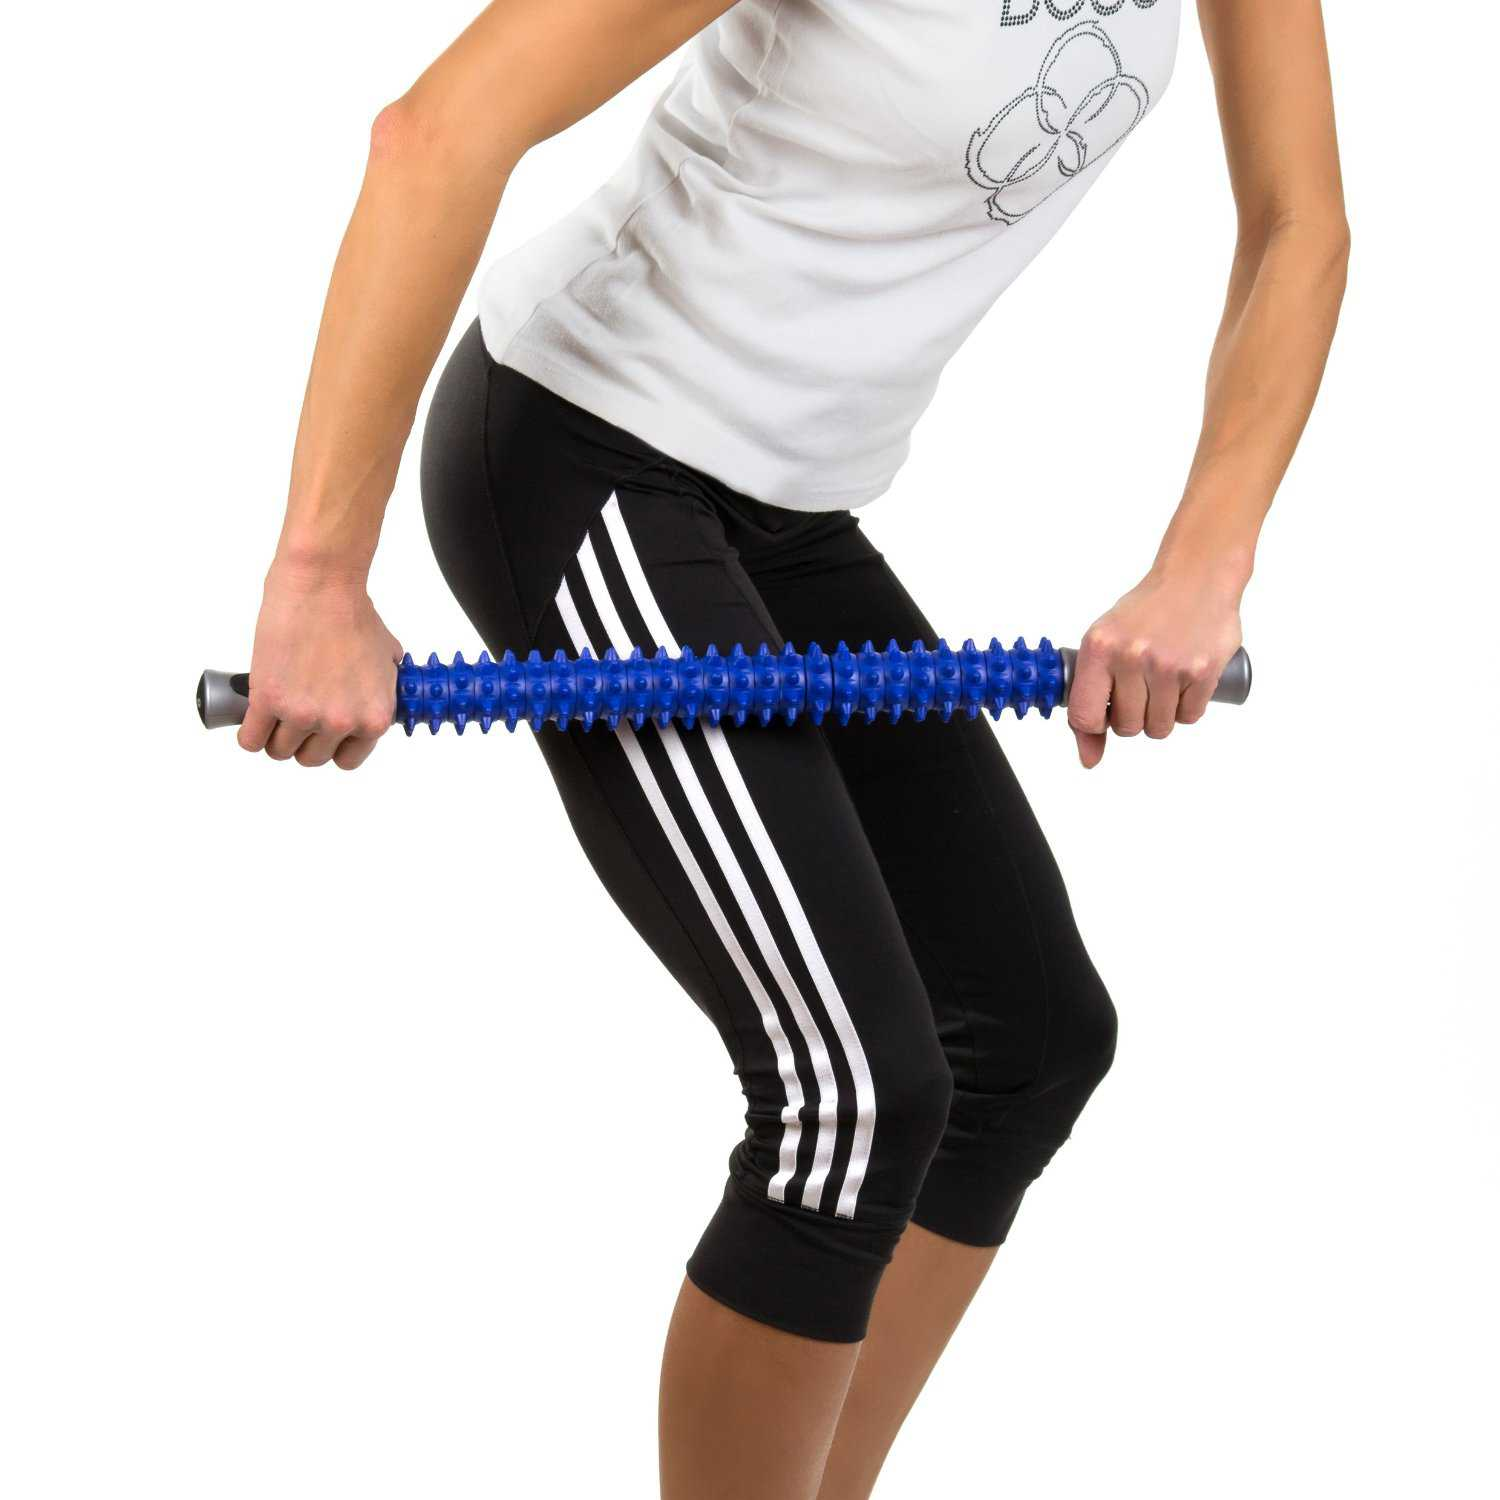 Muscle Roller Stick for Athletics